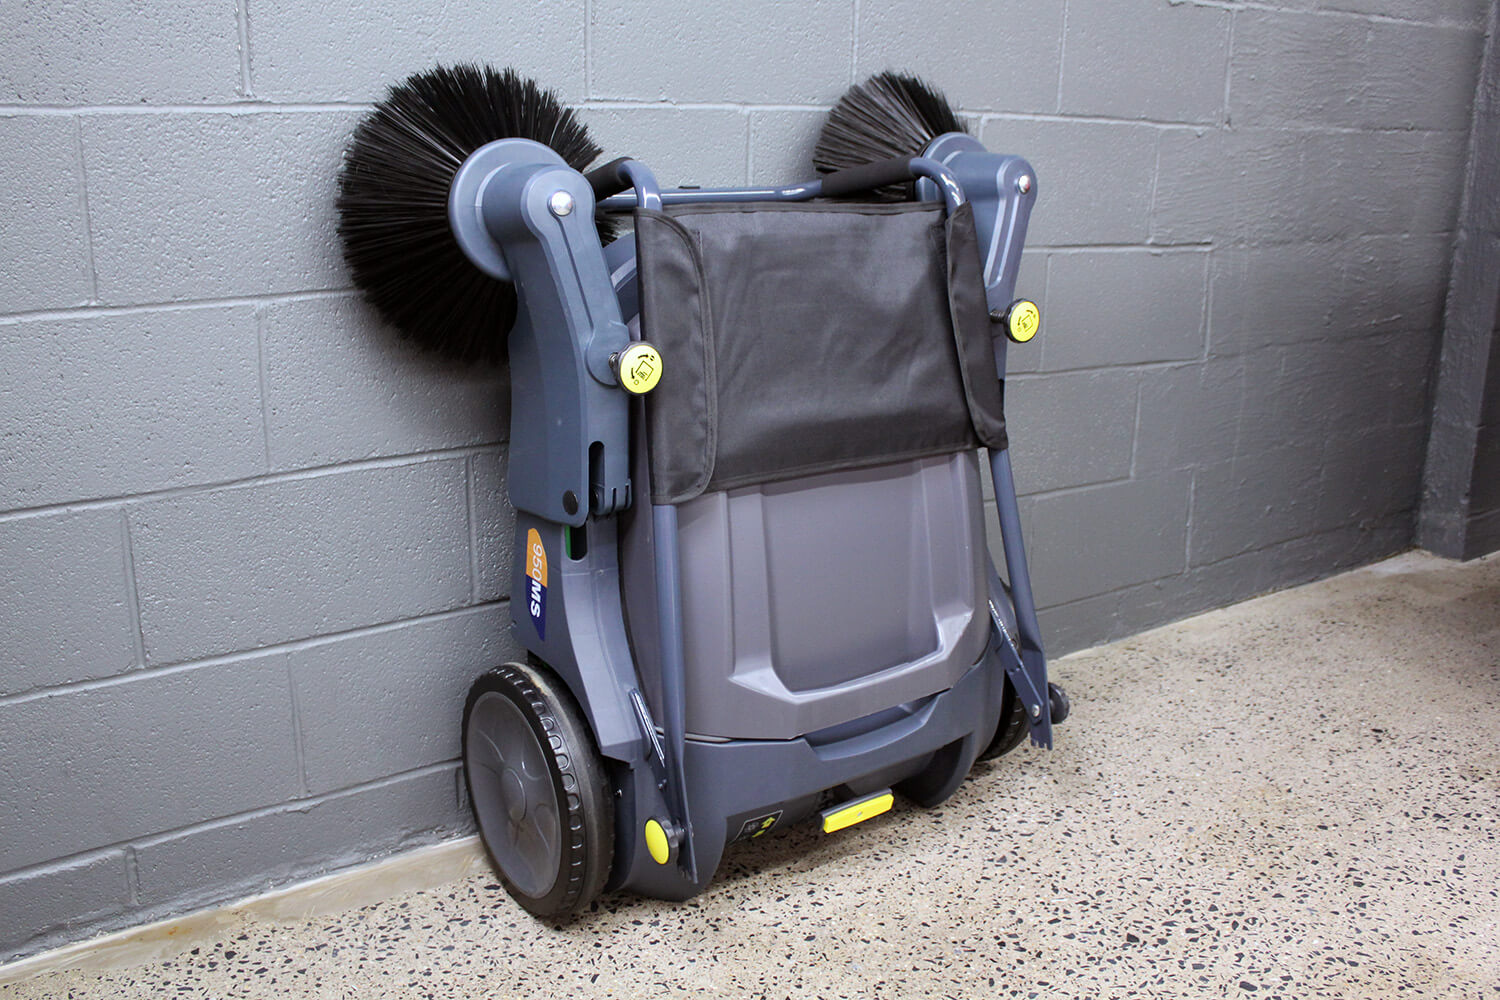 950MS Manual Sweeper Collapsible for Storage